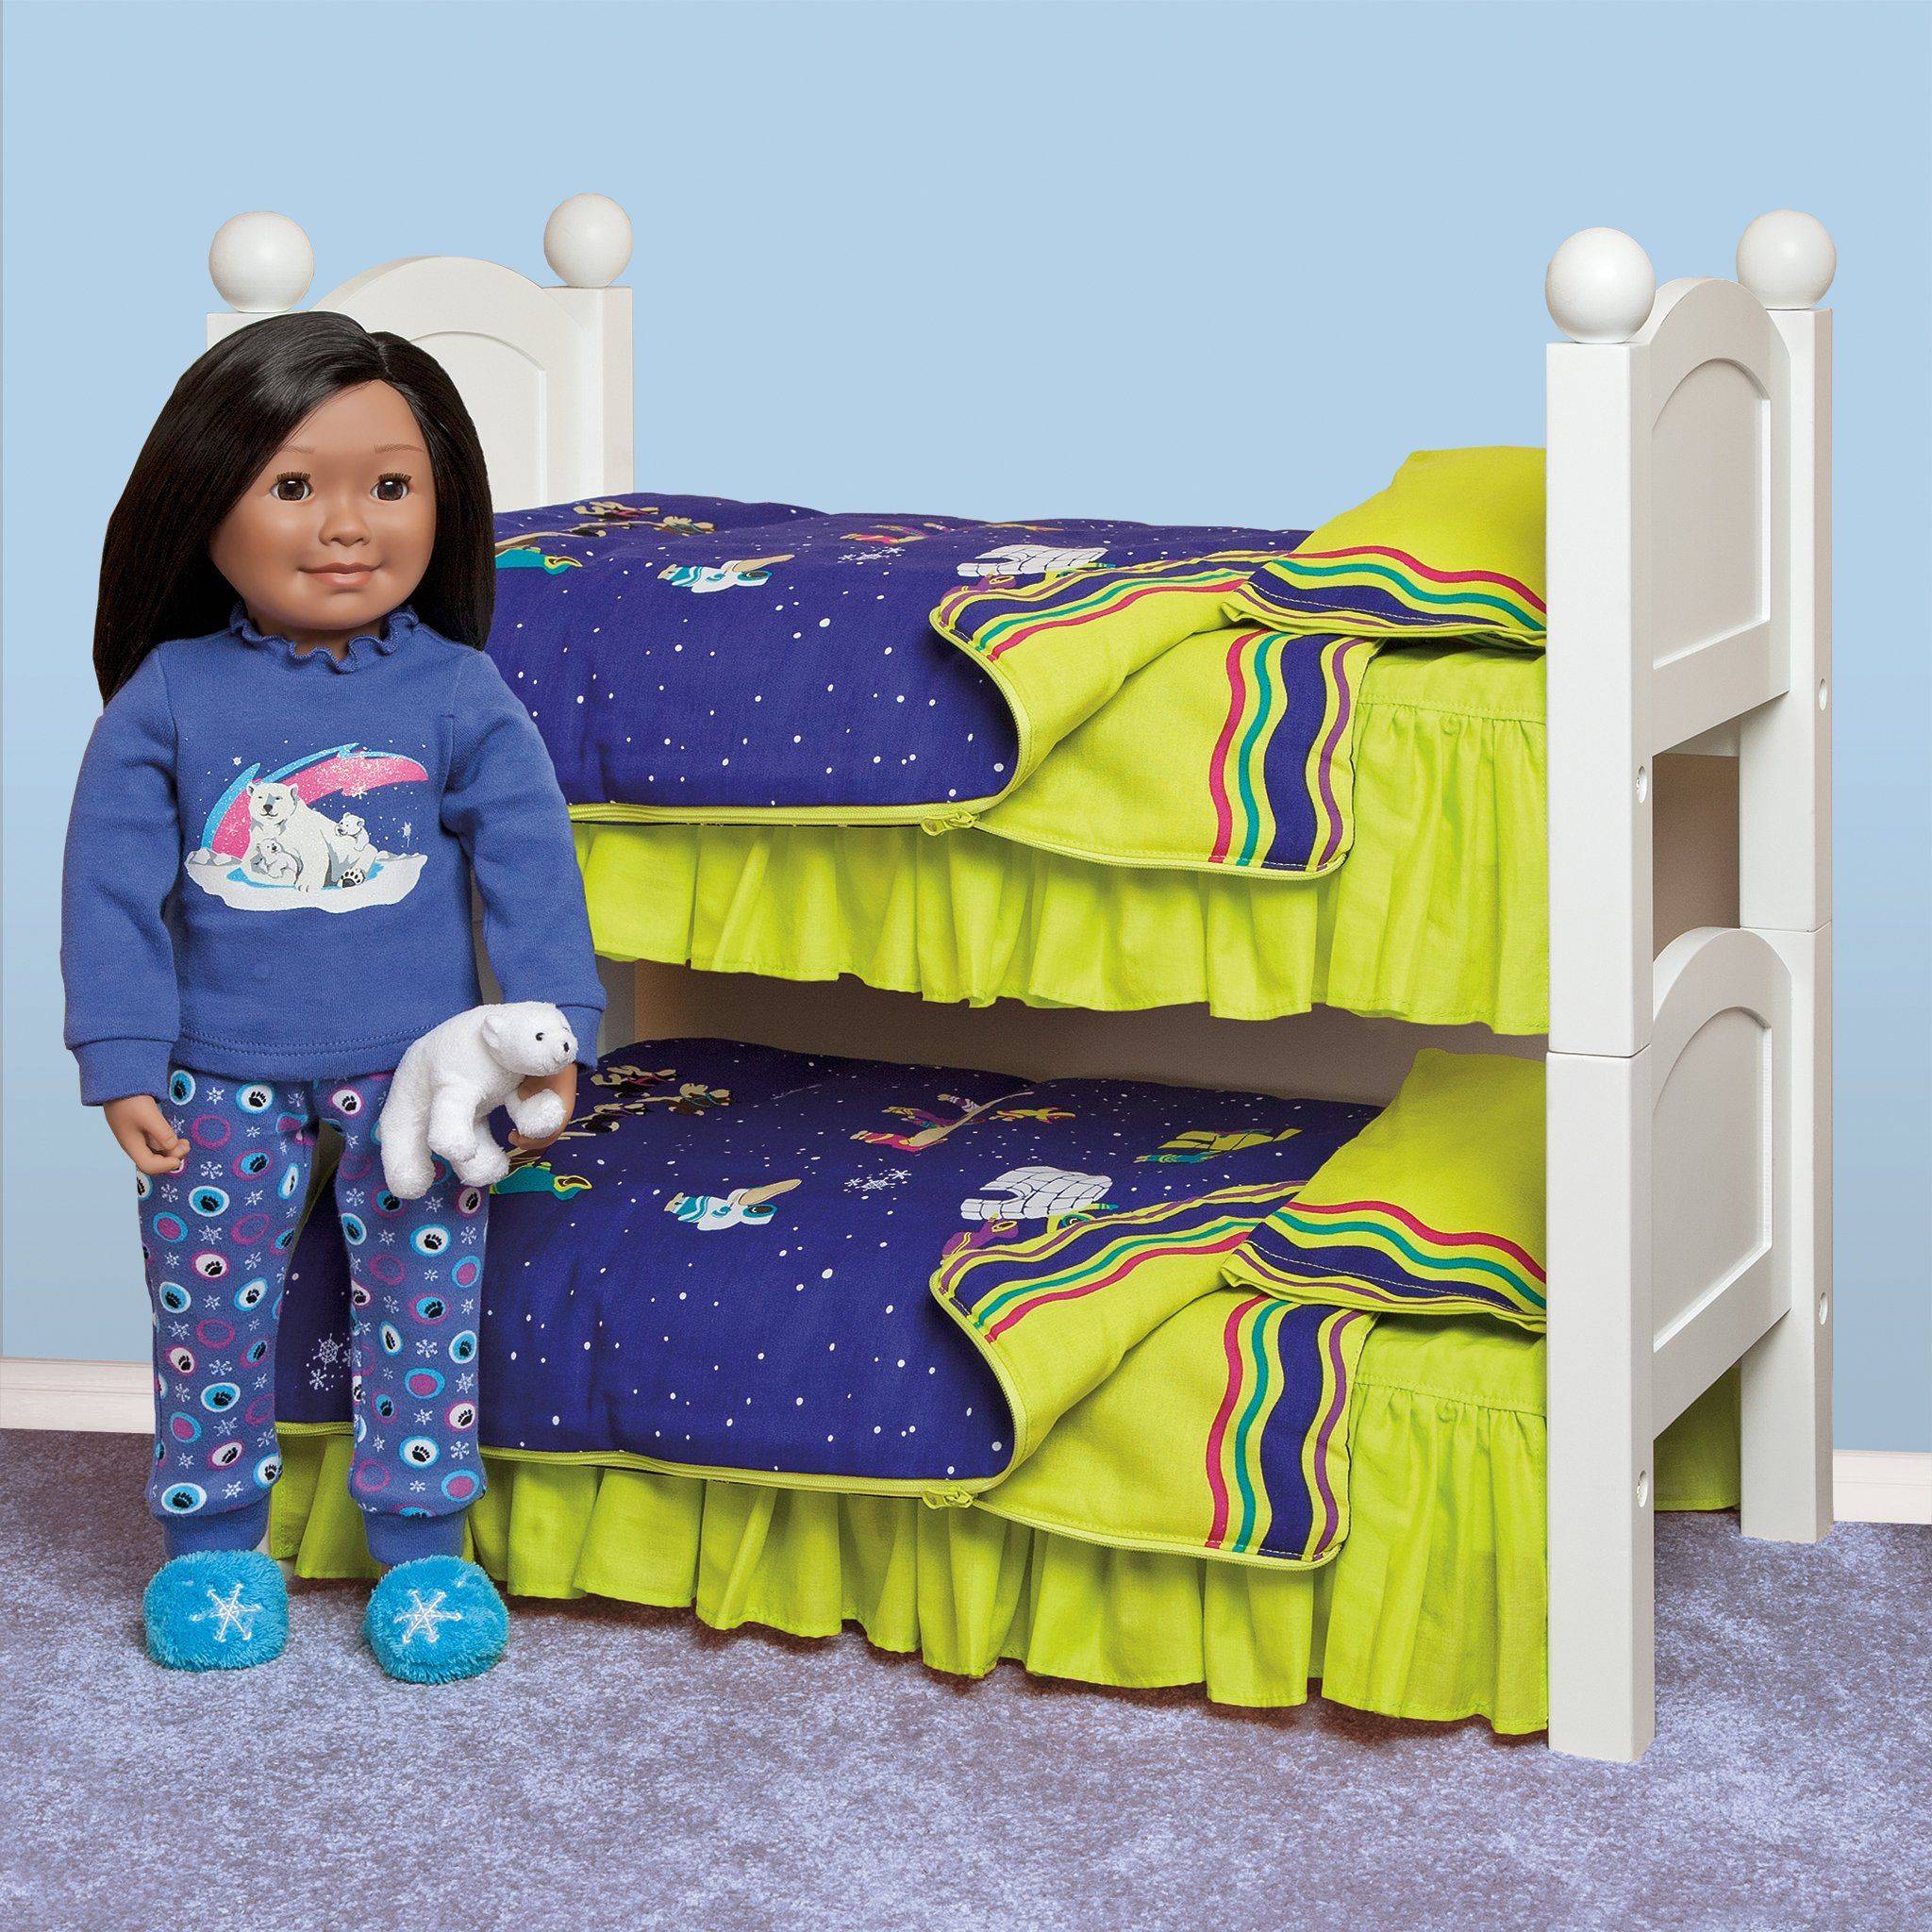 we bed beds the american made of clubbs for girl five doll price